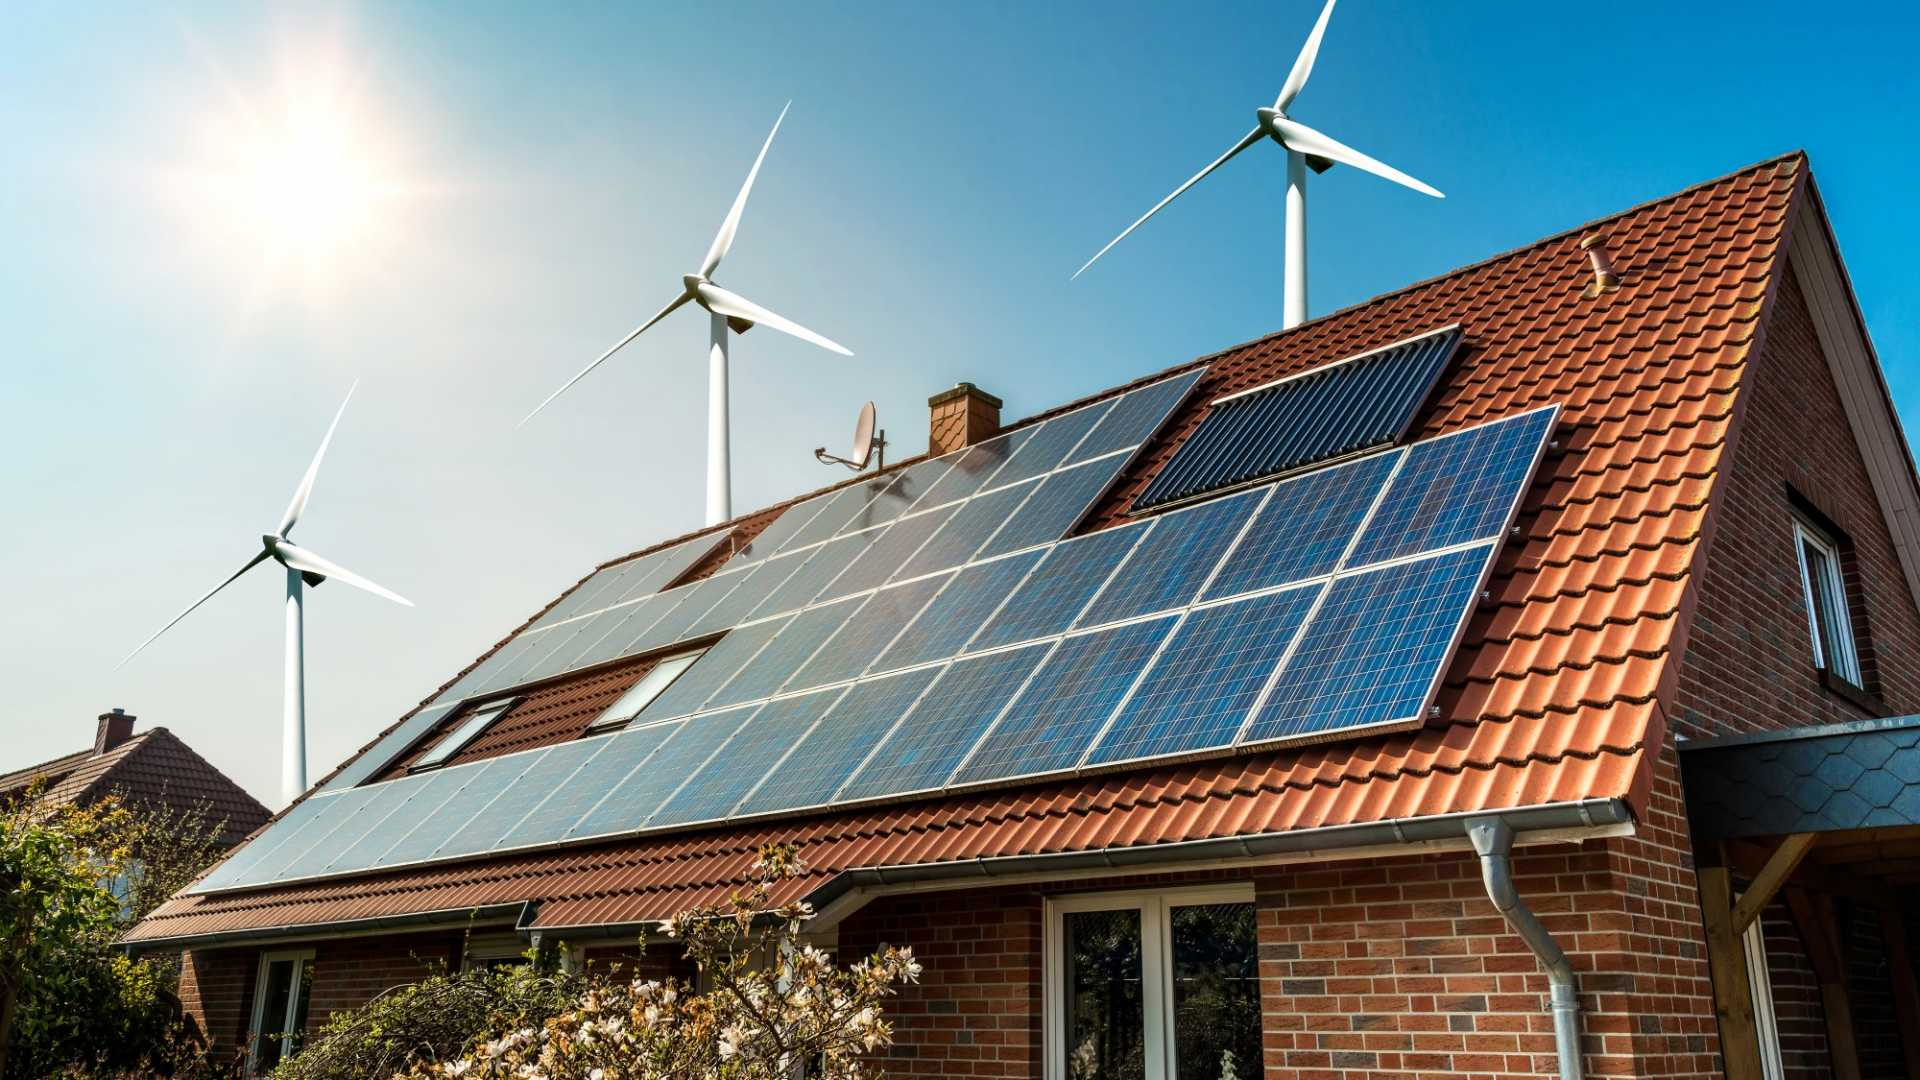 We Need Real Scientific Breakthroughs to Build a Clean Energy Economy